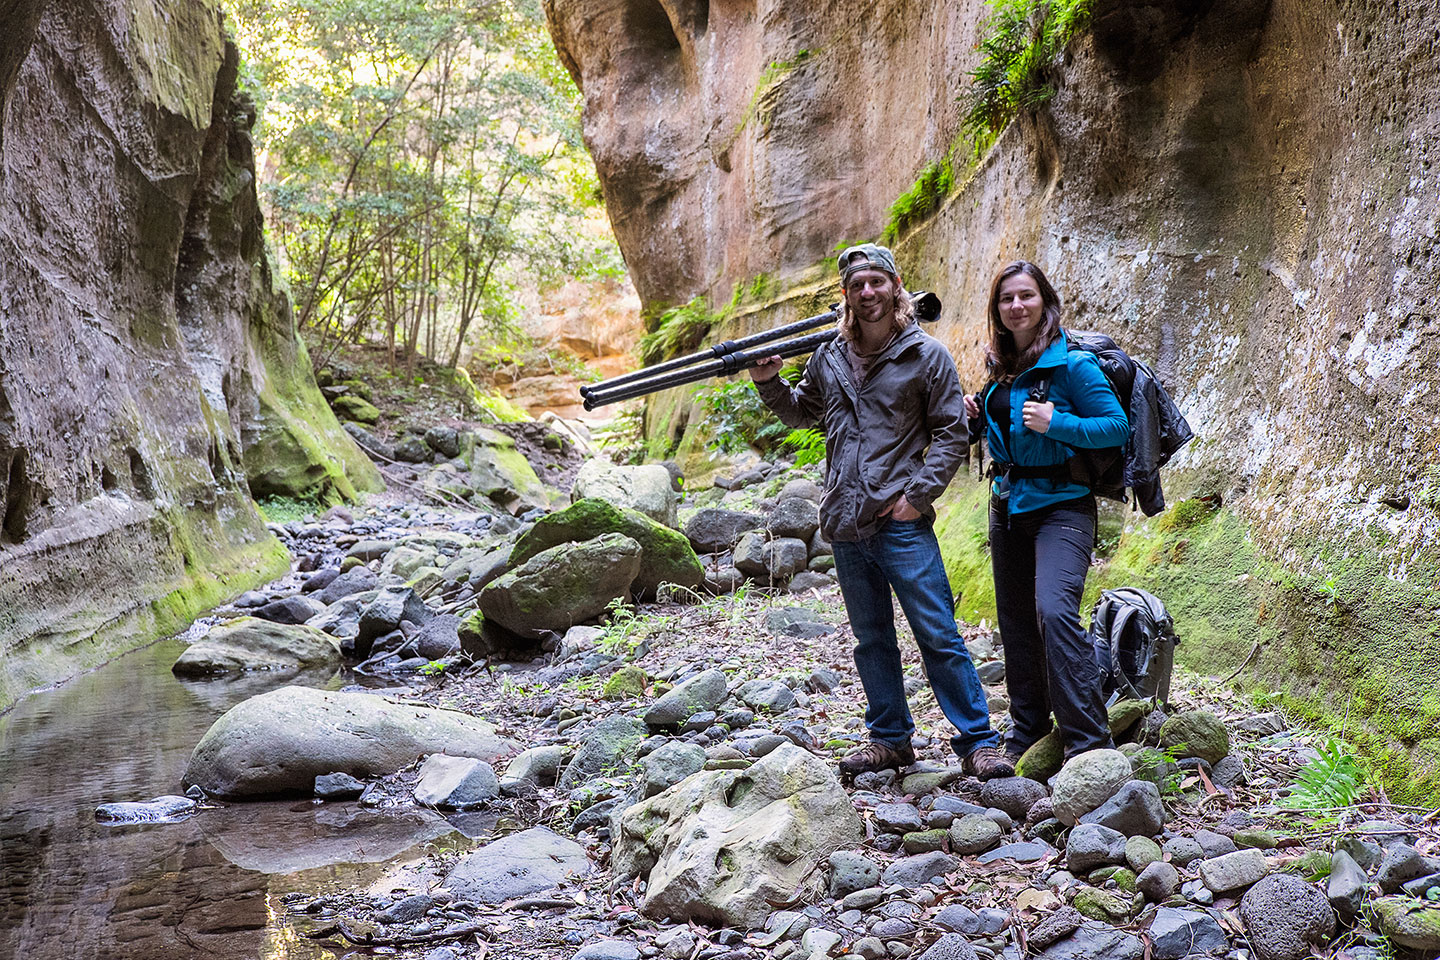 Naomi and Elia during a 16k hike in the Carnarvon Gorge